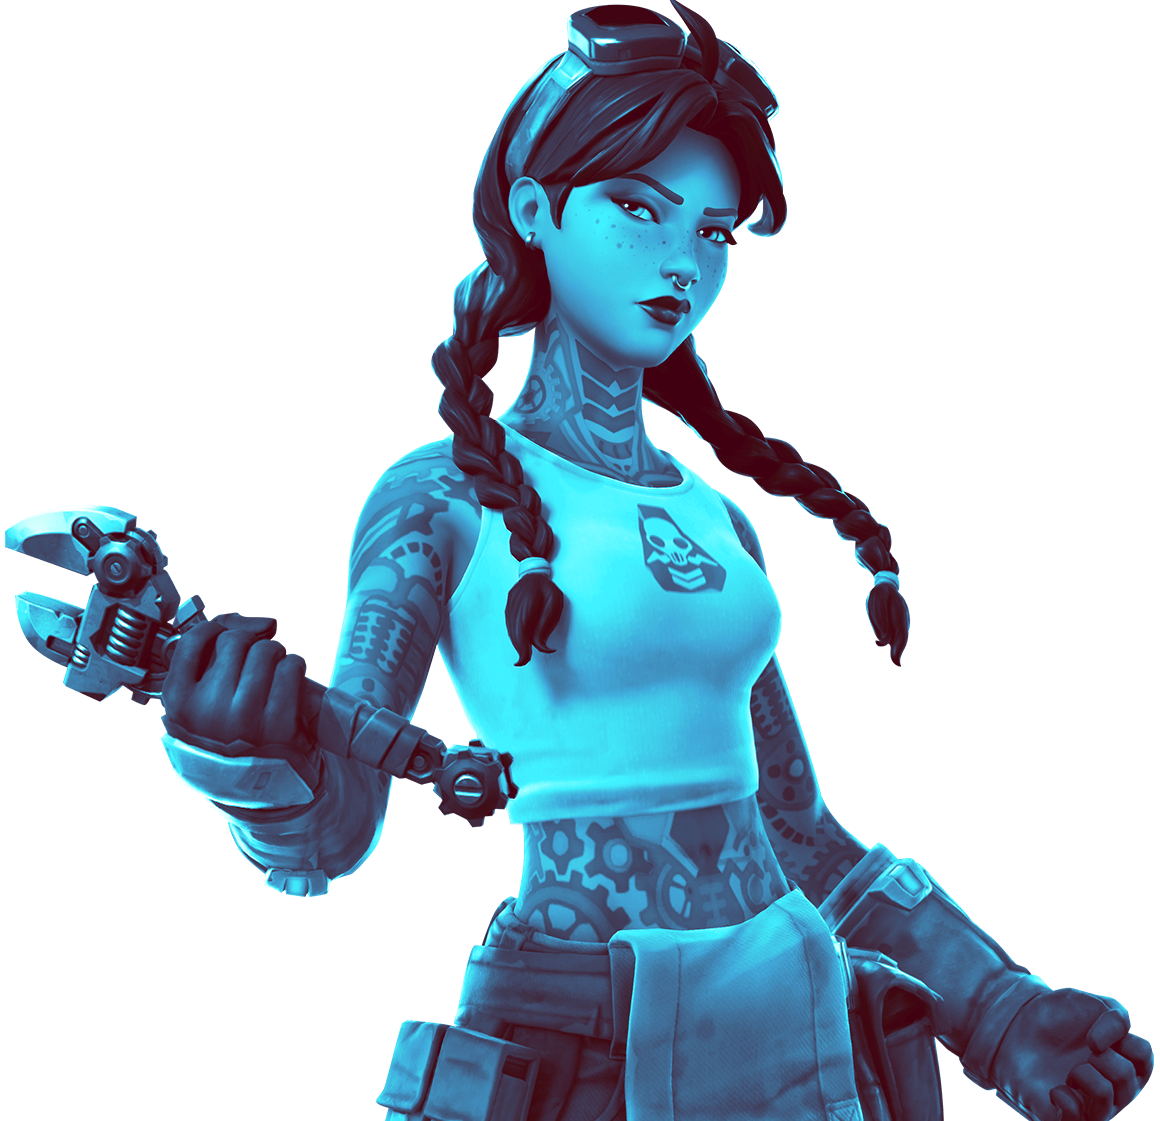 Fortnite Champion Series Chapter 2 Season 3 Download transparent fortnite png for free on pngkey.com. fortnite champion series chapter 2